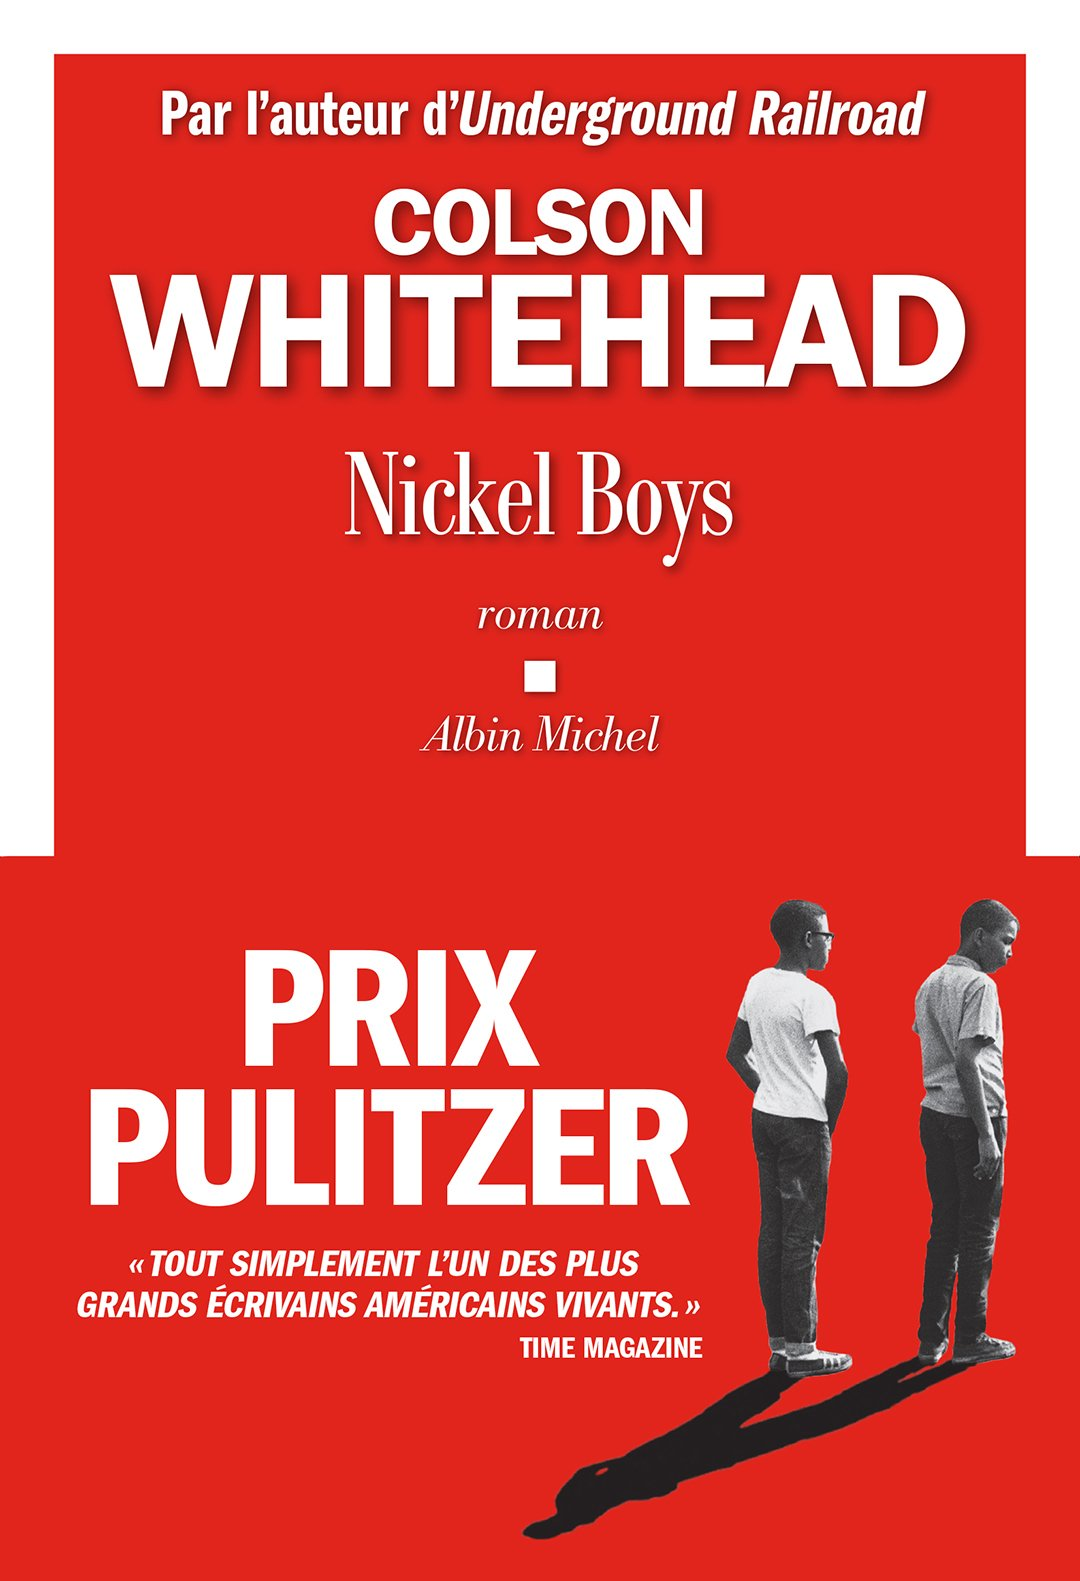 """""""Nickel Boys"""", by Colson Whitehead, was translated into French by Charles Recoursé. It was published by Albin Michel editions and costs 19,90 euros for 272 pages."""